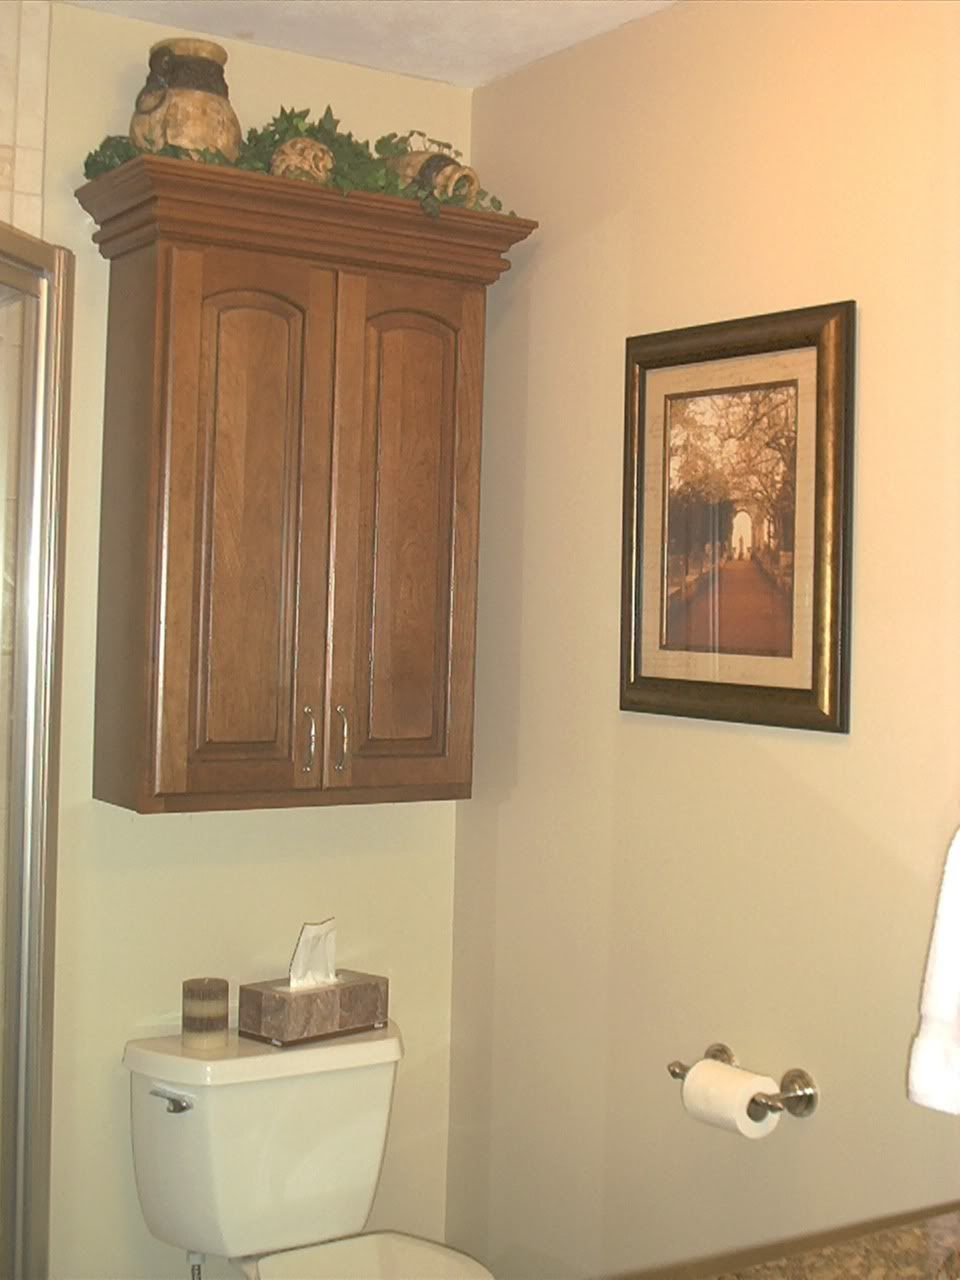 cabinets over toilet in bathroom. bathroom storage cabinets over toilet | wall cabinet above in water closet/toilet room a